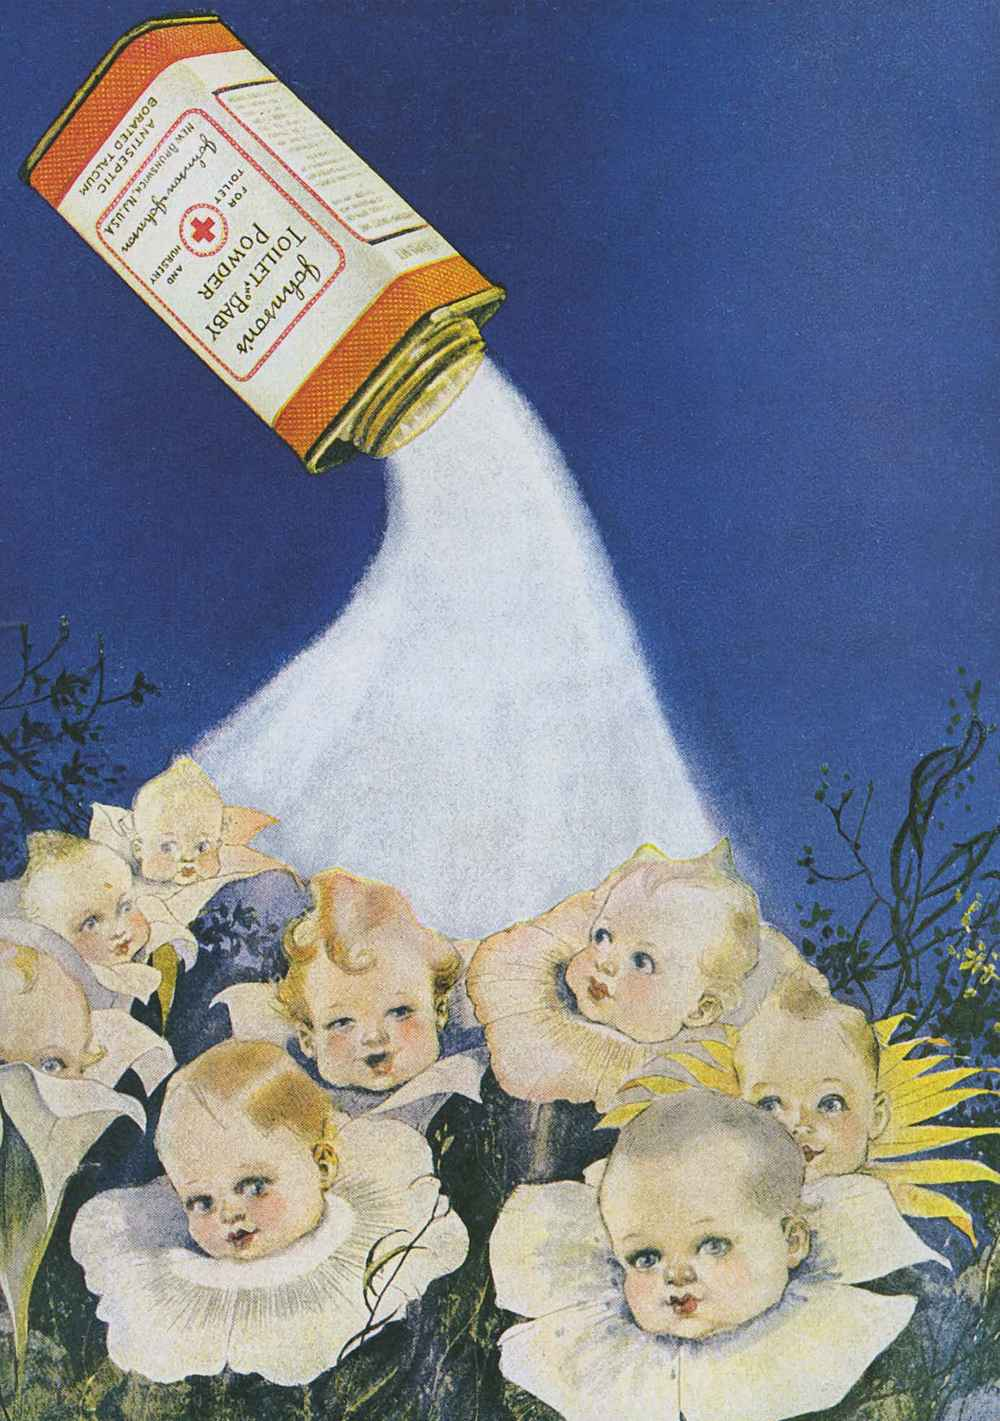 1921 Advertisement: Johnson's Toilet and Baby Powder - Antiseptic Borated Talcum Powder